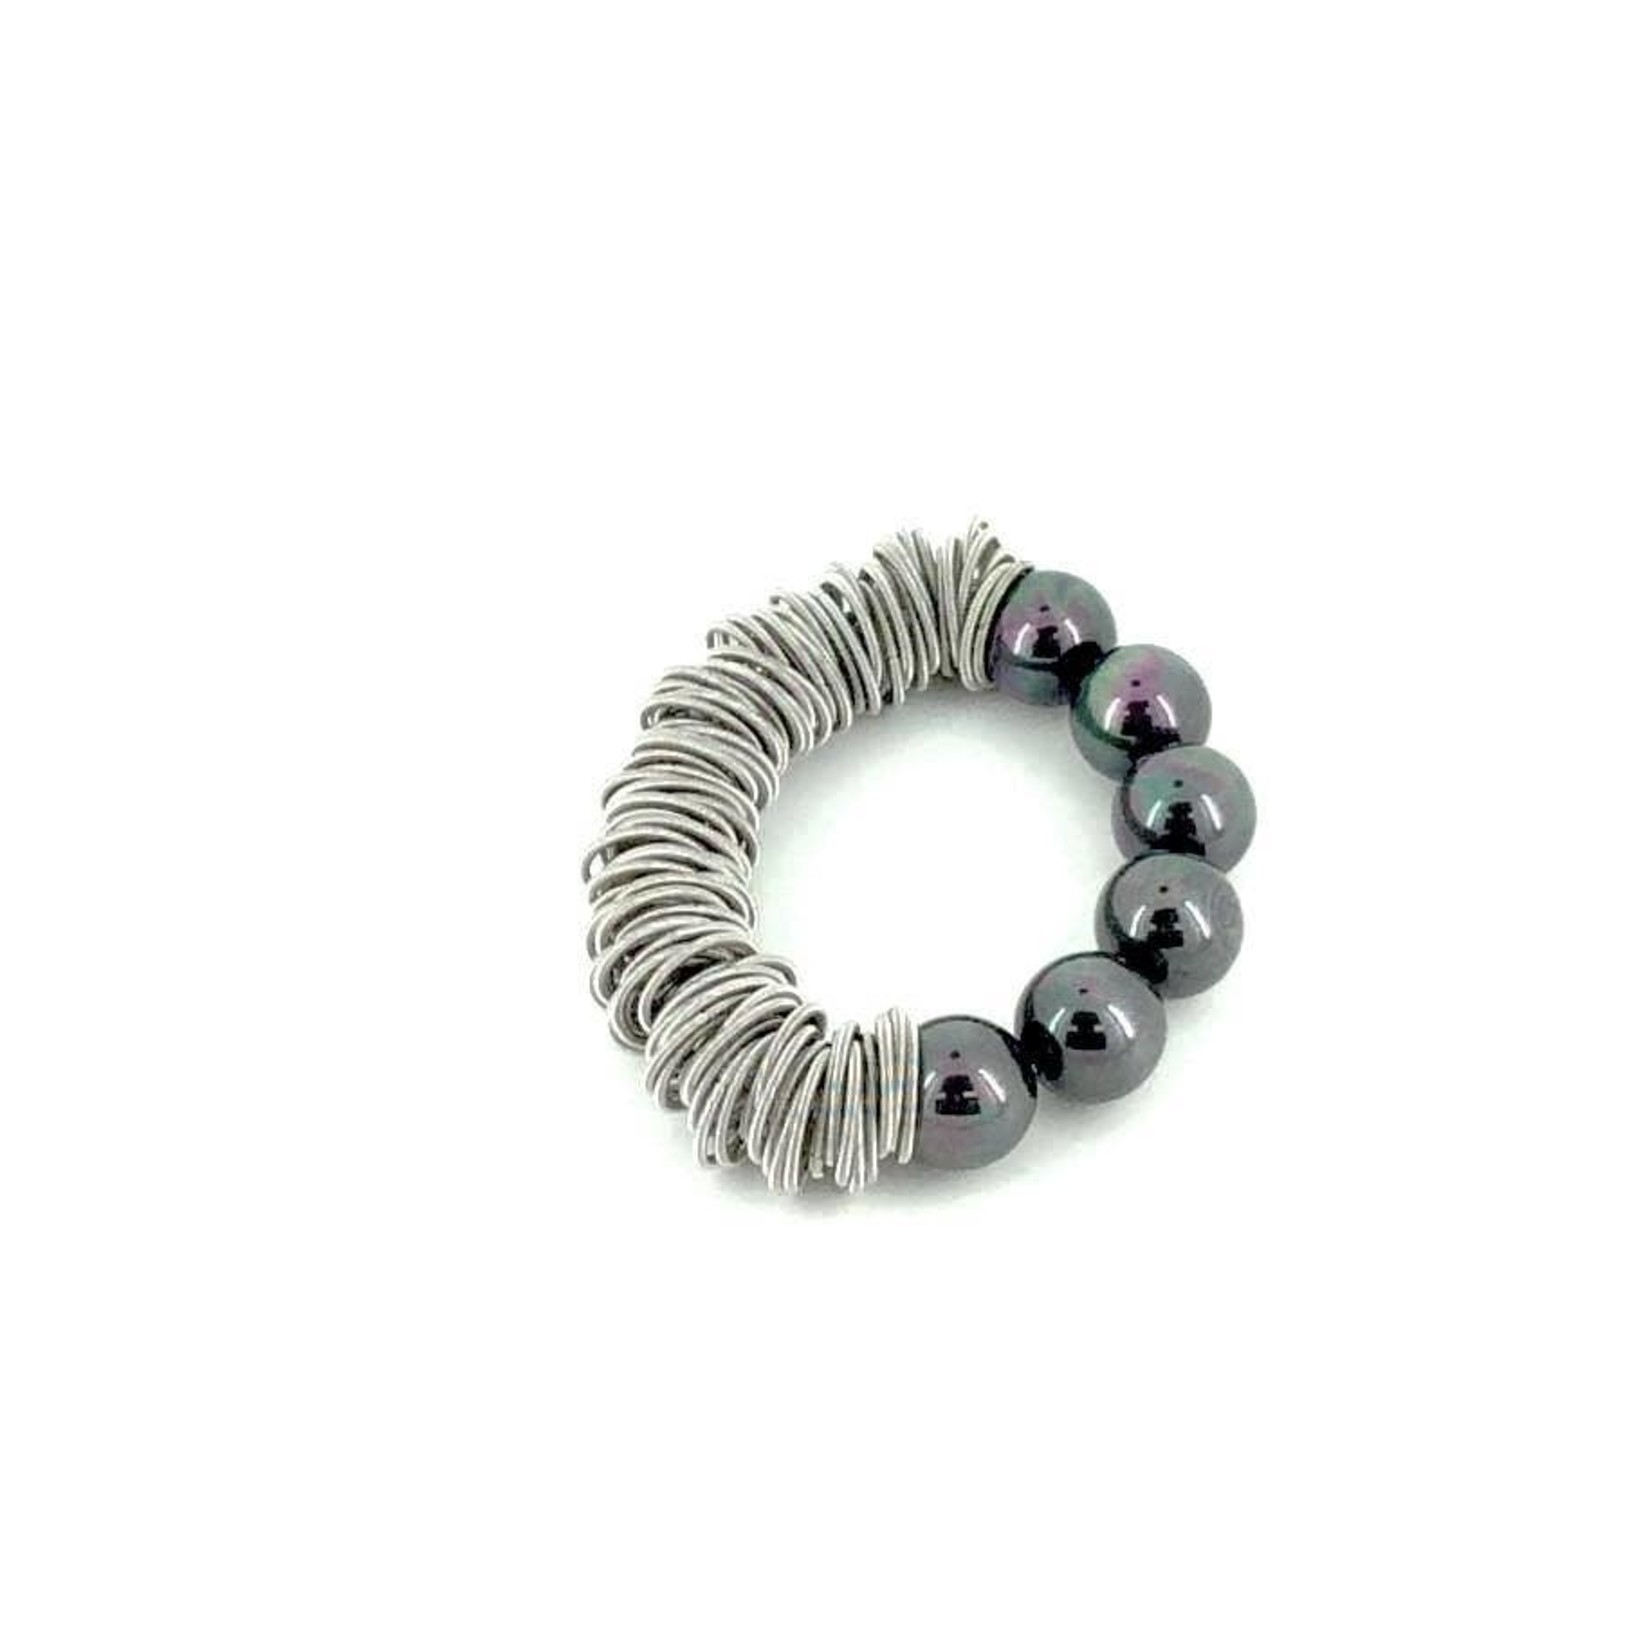 Sea Lily Silver Piano Wire Spring Ring Bracelet w/ Black Mother of Pearl Beads